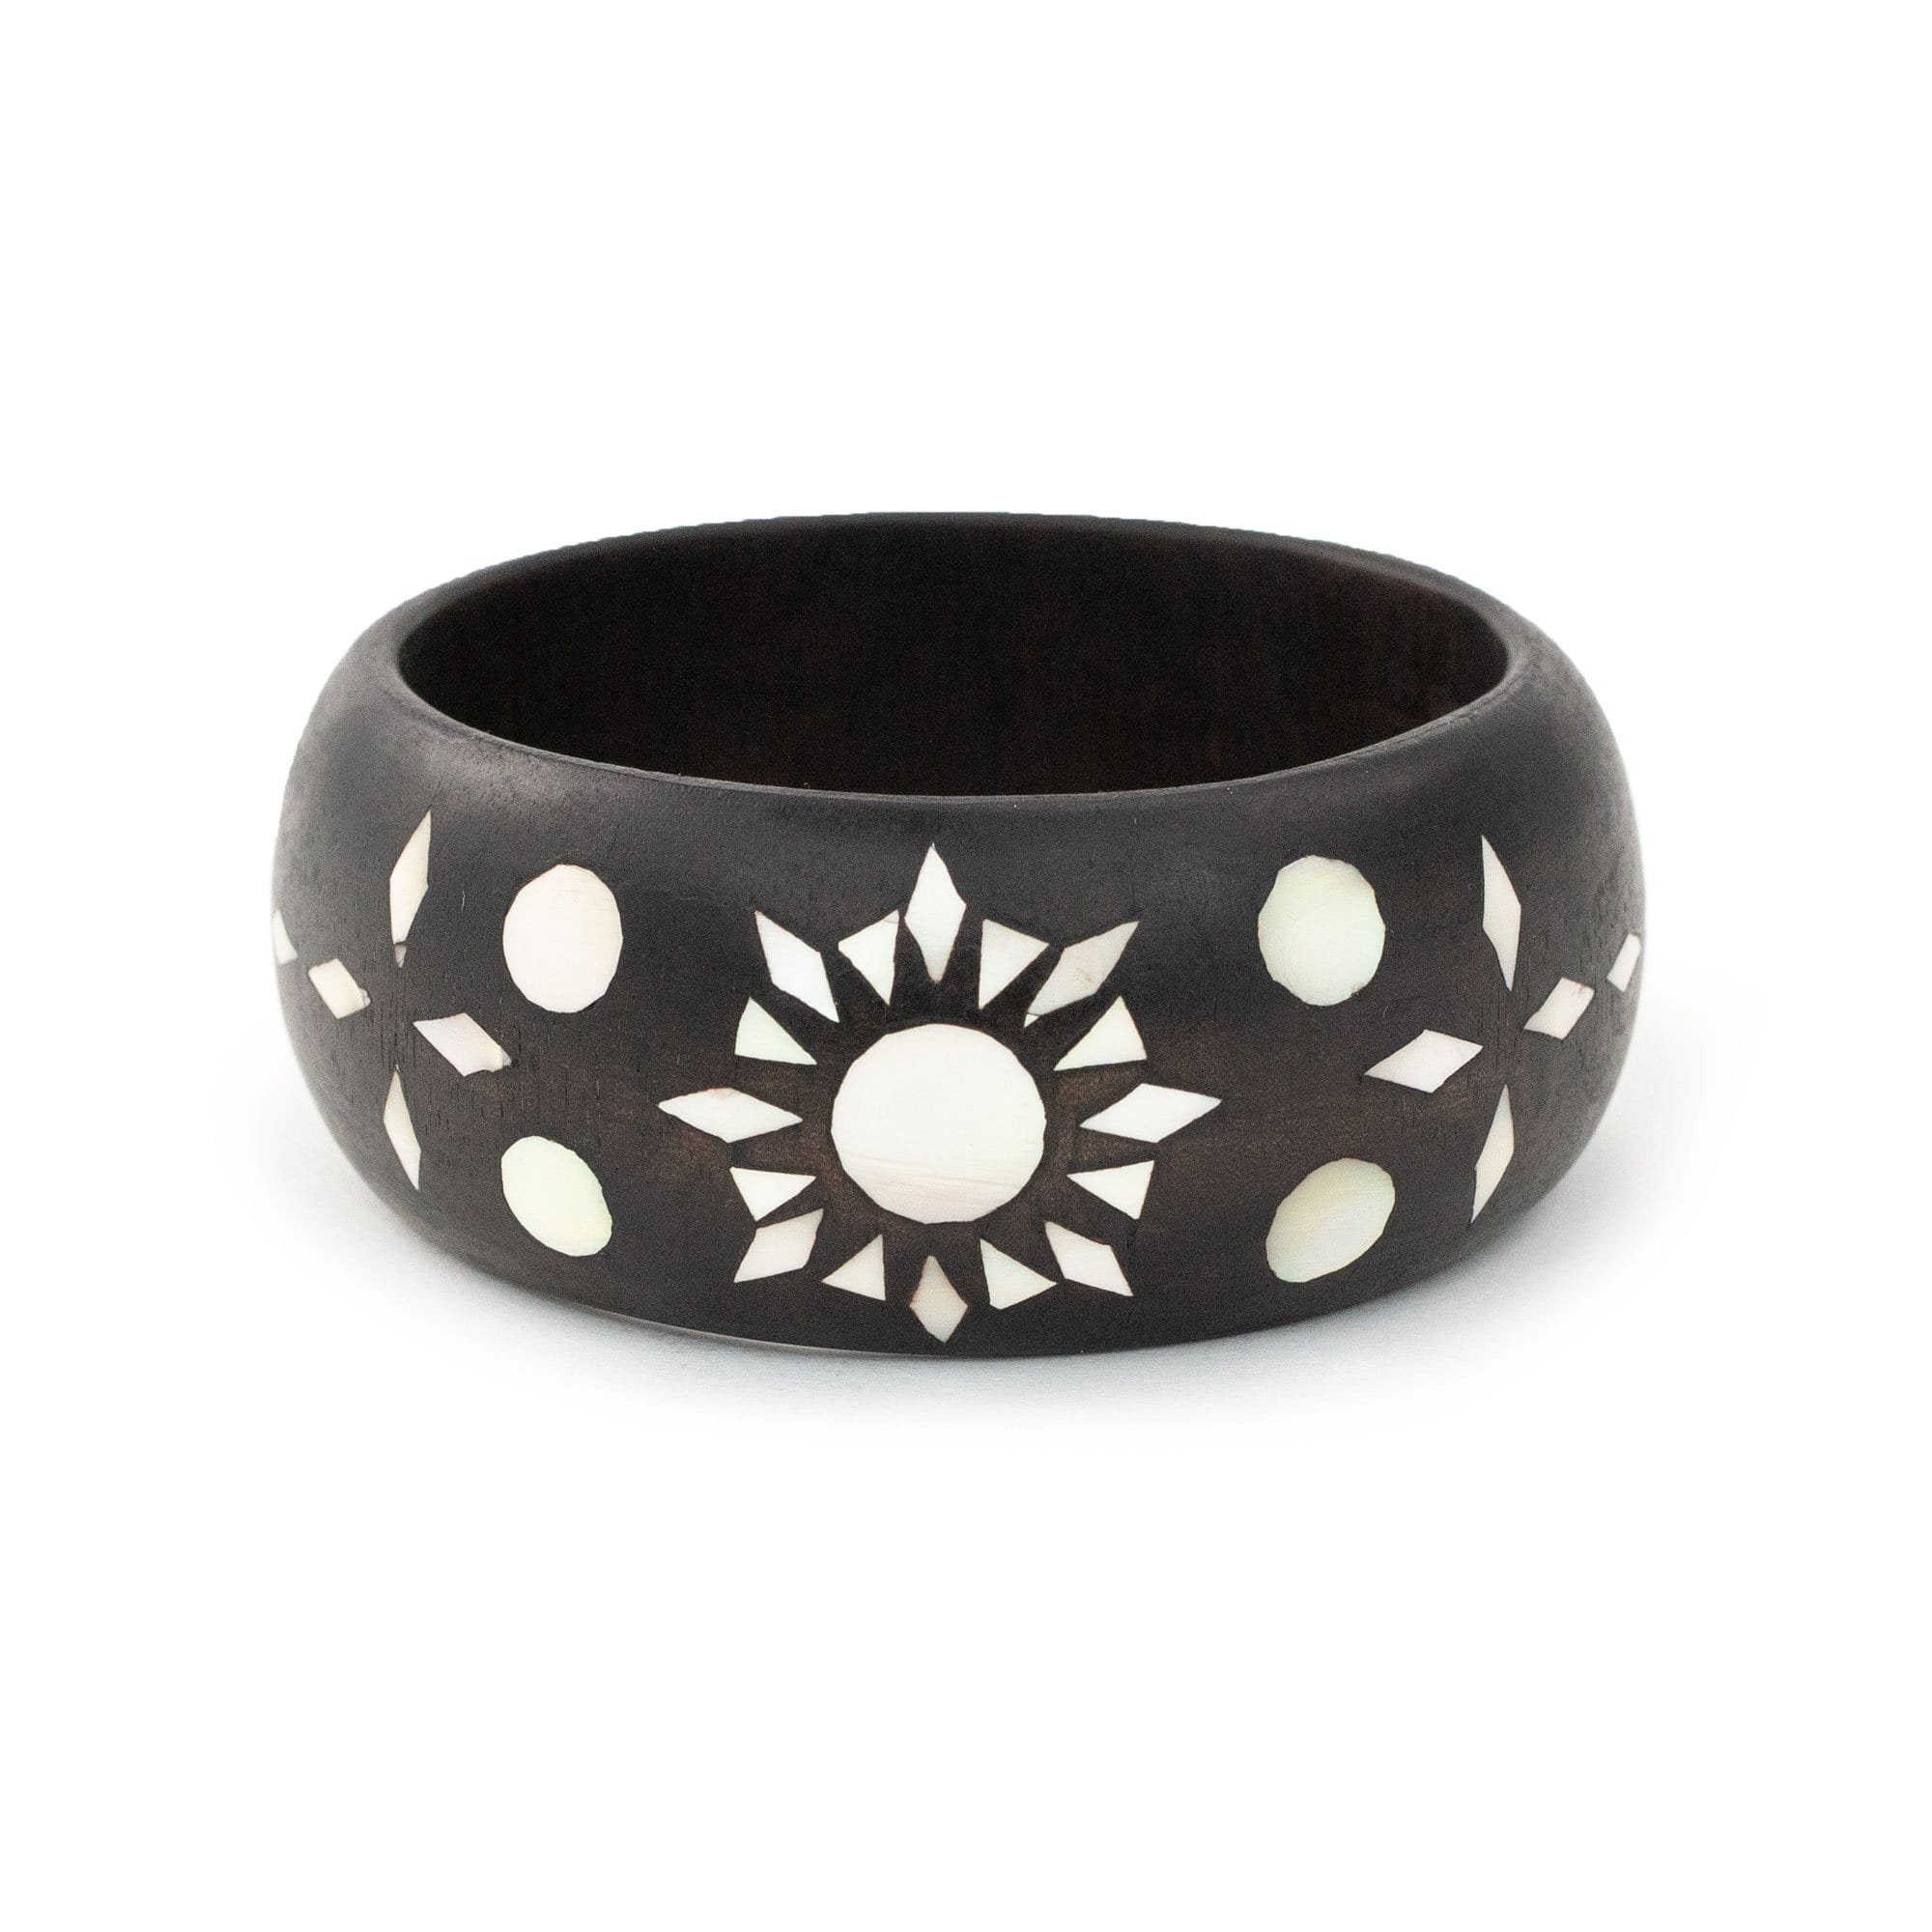 Mindanao Pearl & Wood Bangle - Sun made by artisans in the Philippines. Love Is Project creates jobs.